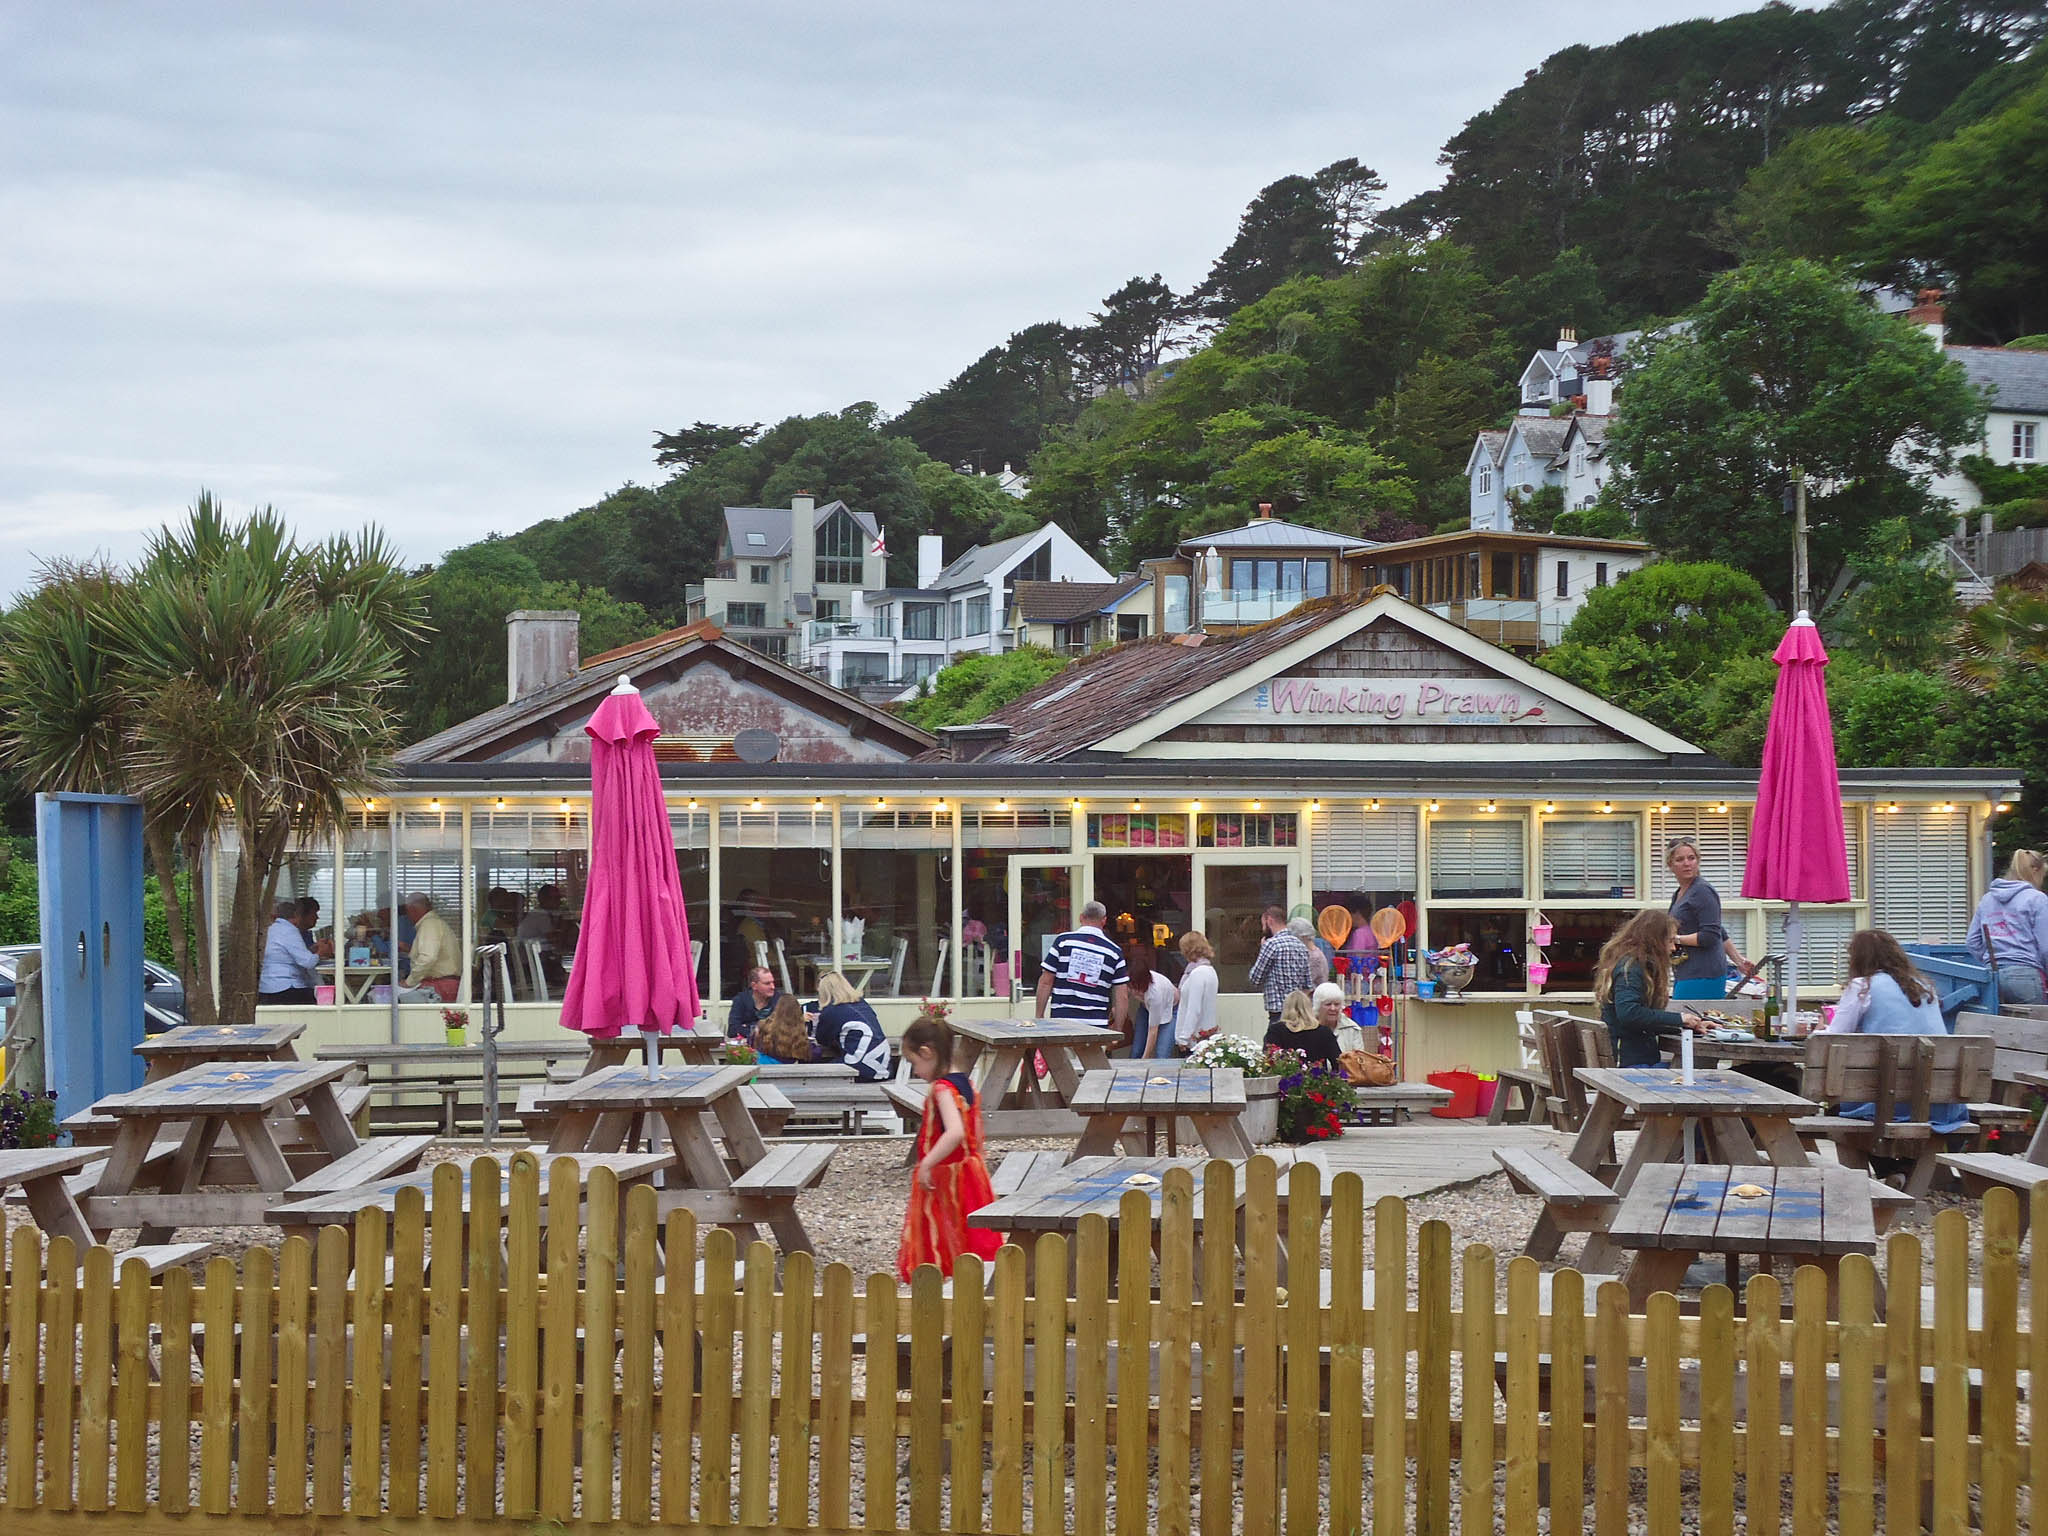 The Winking Prawn, Salcombe